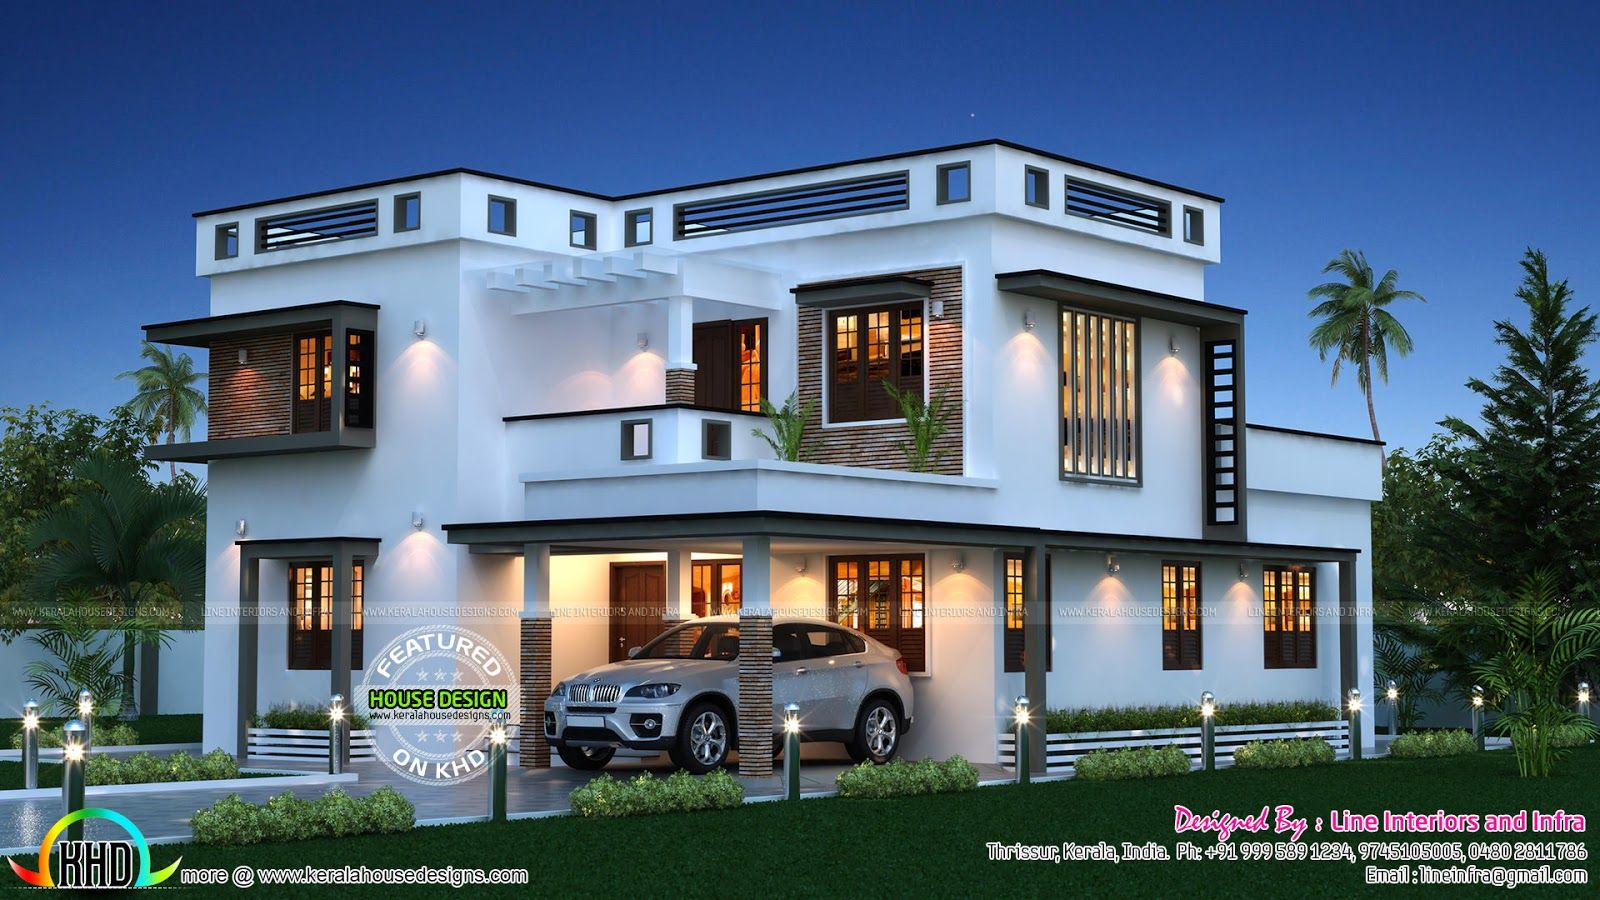 beautiful sq ft home kerala home design floor plans kitchen layout  templates home interiors. beautiful sq ft home kerala home design floor plans kitchen layout